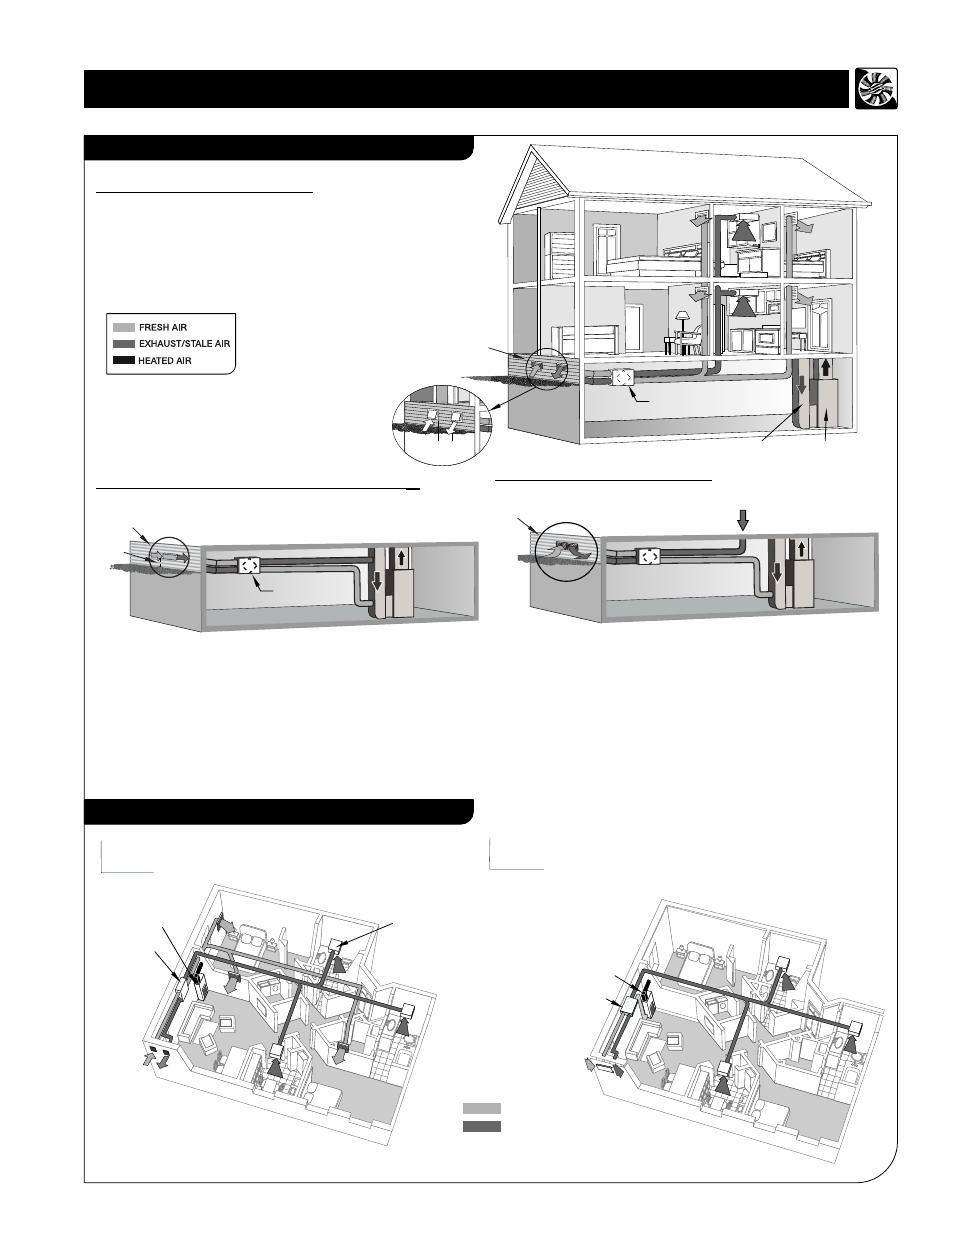 Hrv - deluxe installation guide2(web), Hrv and erv typical